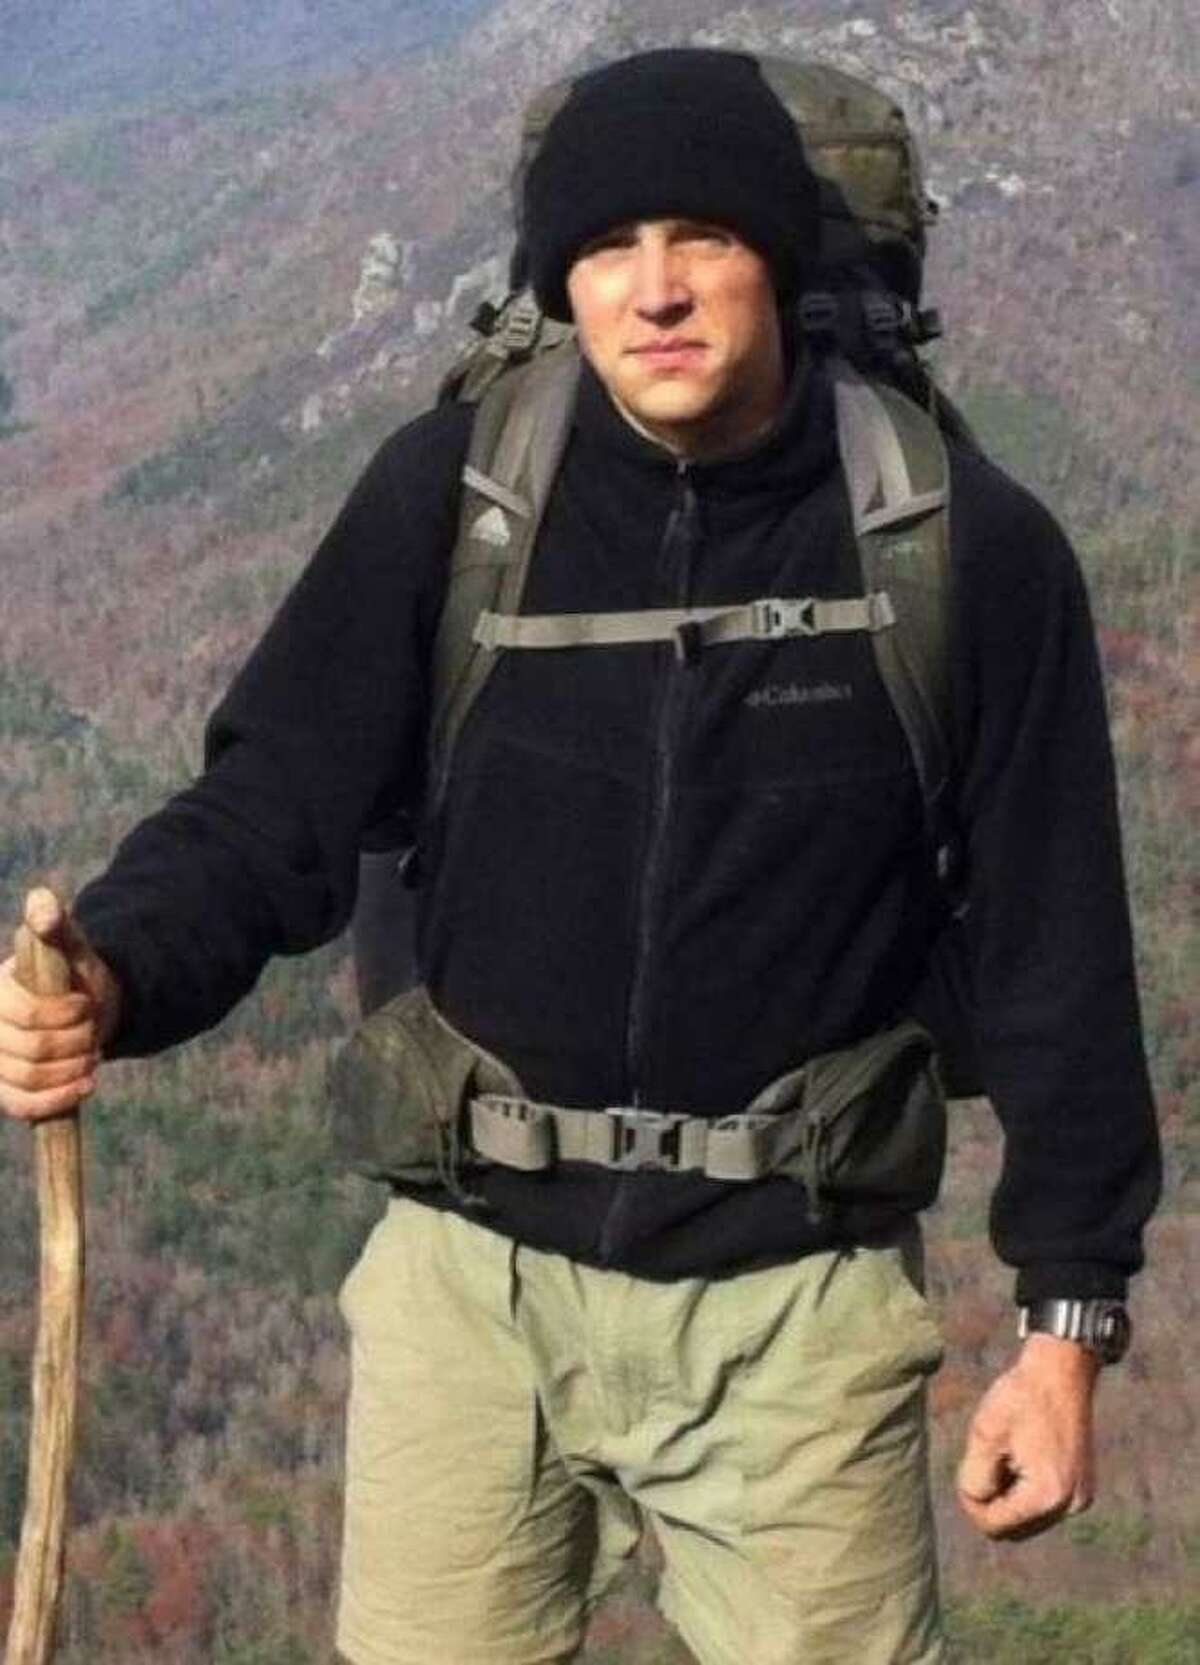 The search for a missing Marine from Washington, Conn. through avalanche prone areas of California has been put on